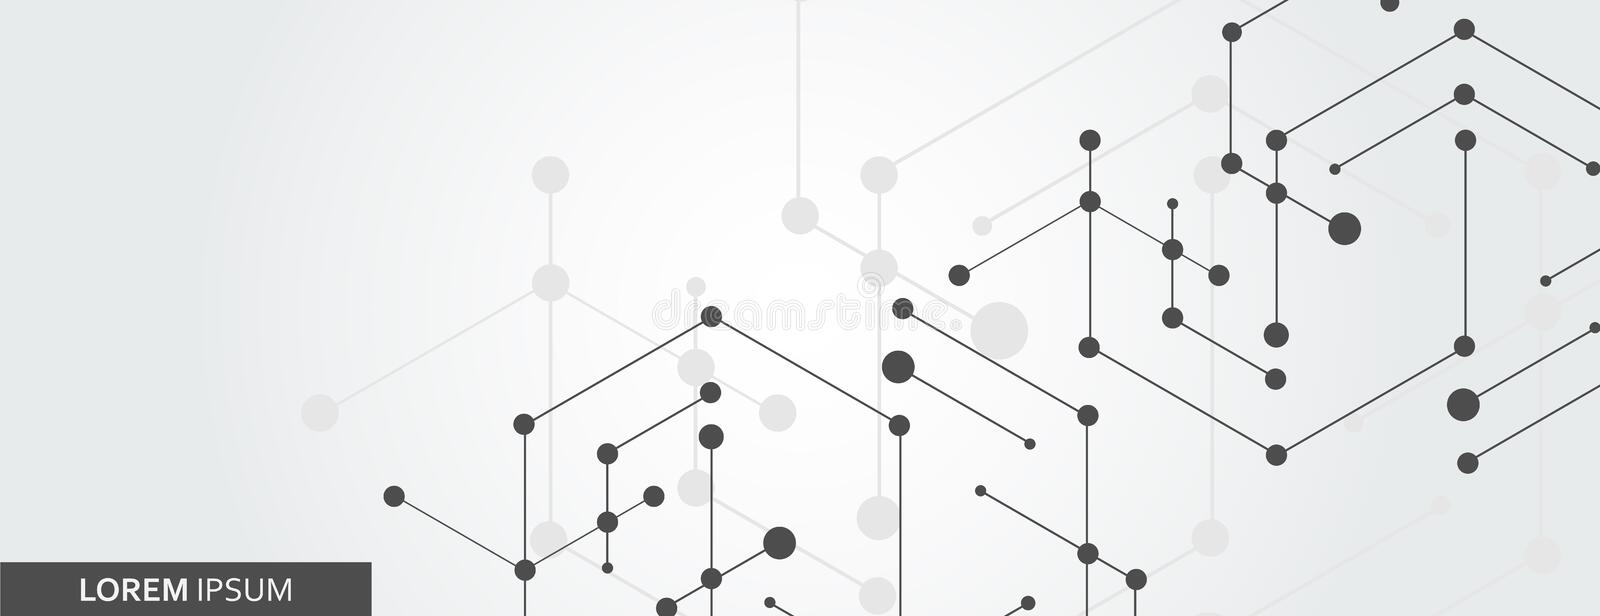 Geometric hexagon connect with connected line and dots. Simple technology graphic background. Vector banner design royalty free illustration